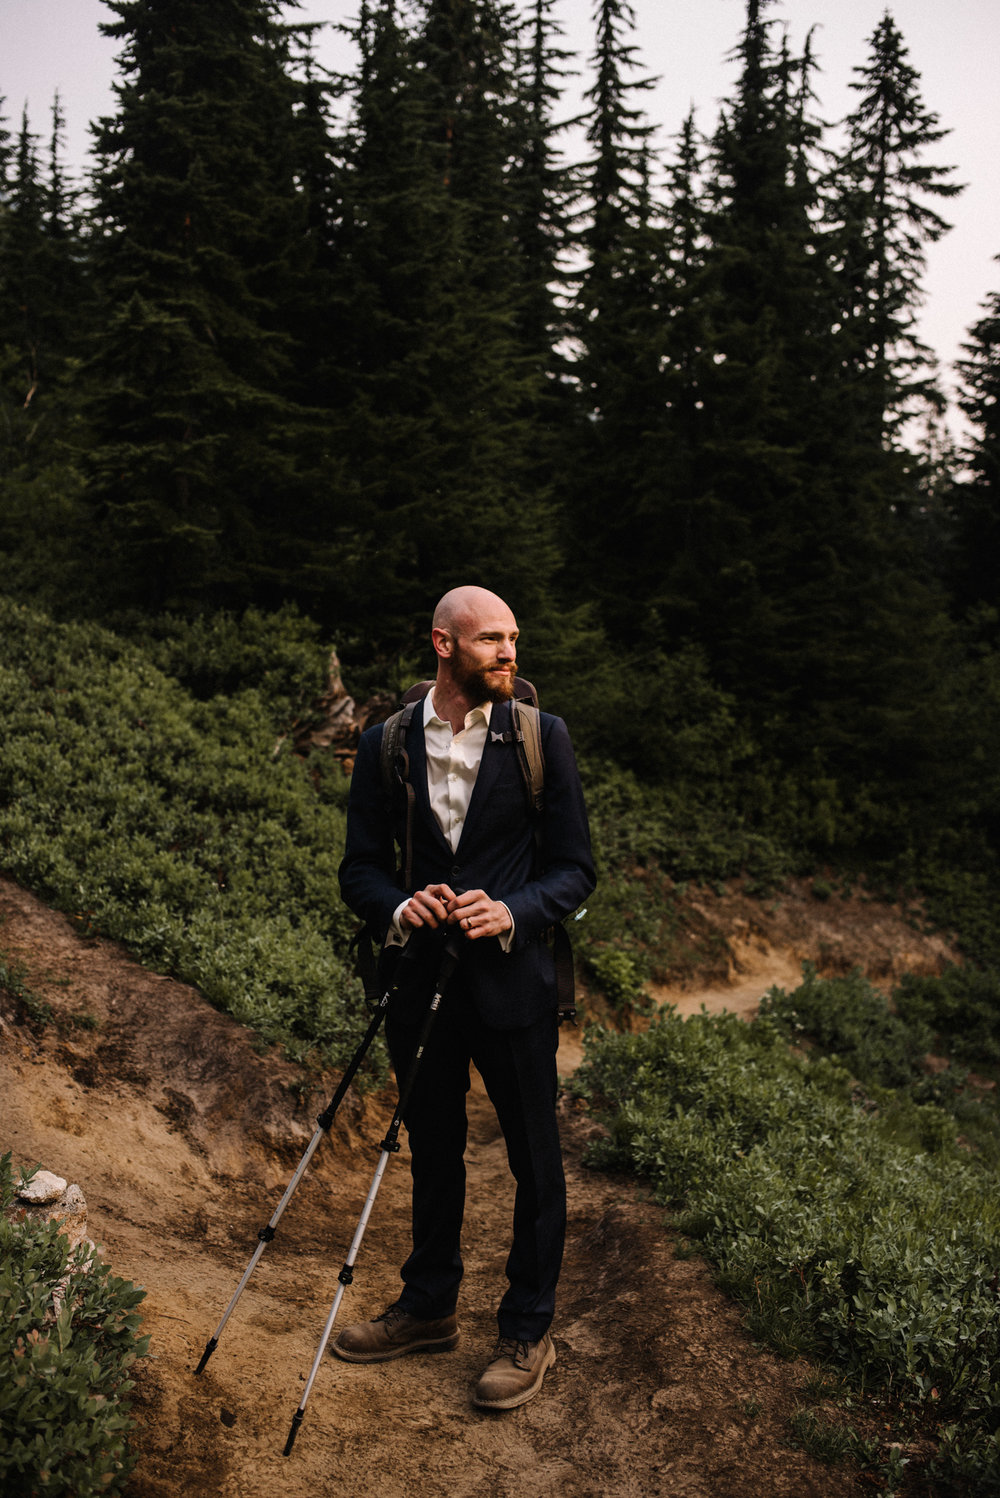 Megan and Andrew Lake Valhalla Washington PNW Adventure Elopement White Sails Creative Sunrise Hike_70.JPG